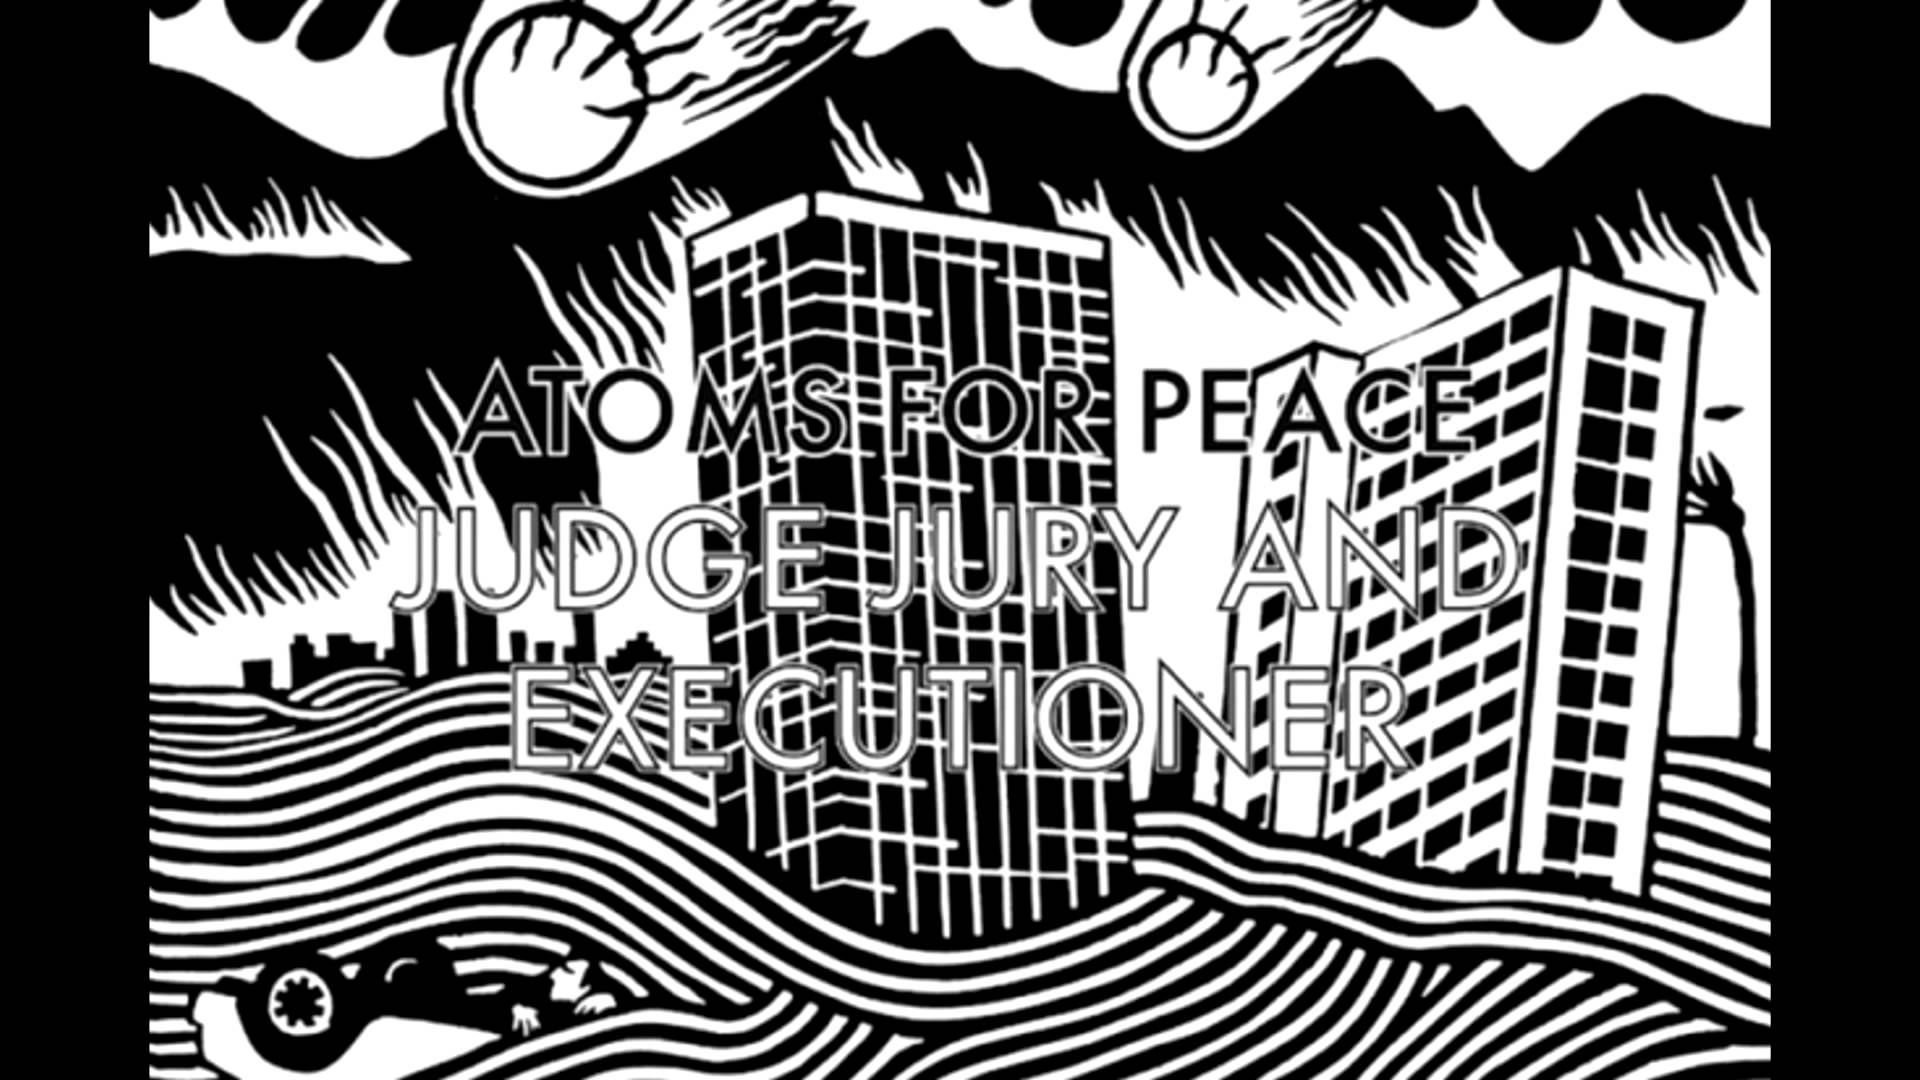 Atoms for Peace S.A.D. (With images) Atoms for peace